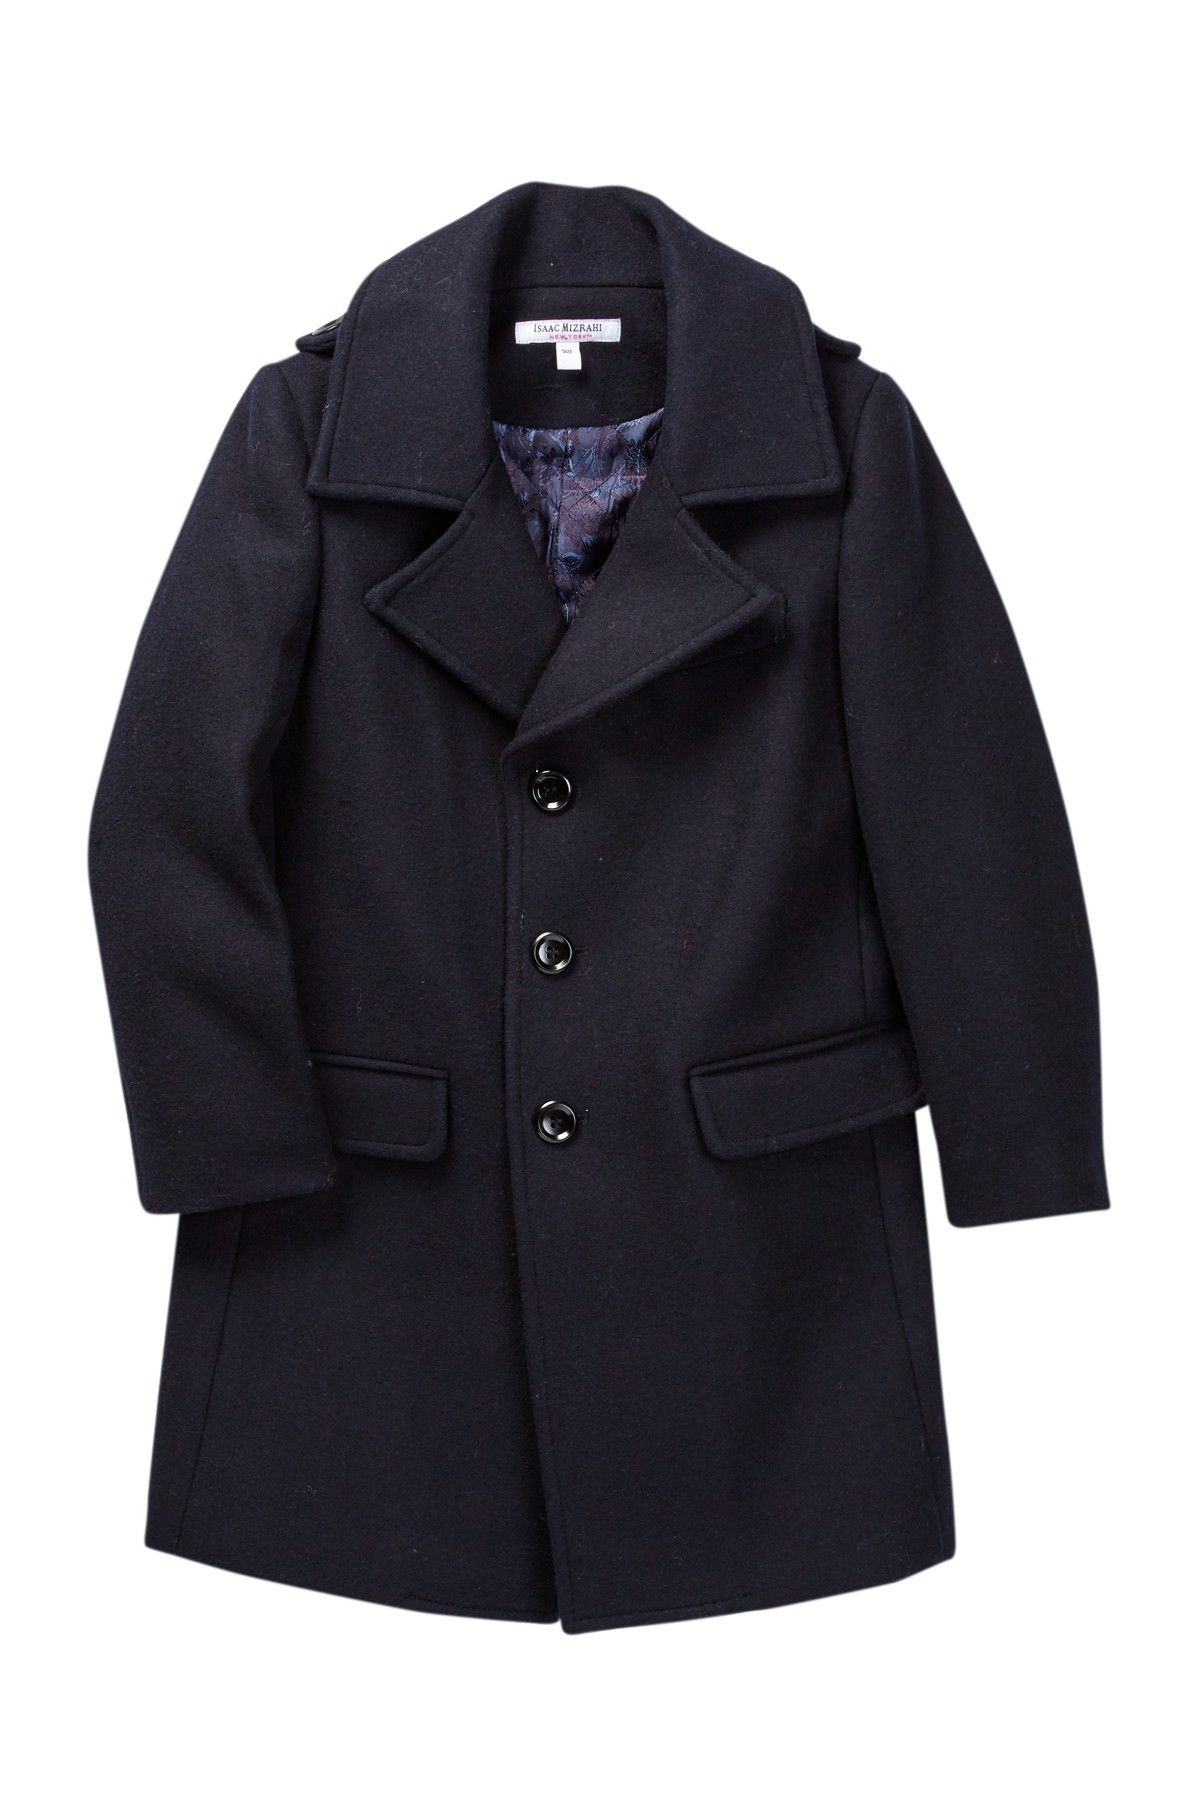 Isaac Mizrahi Single Breasted Wool Blend Overcoat (Toddler